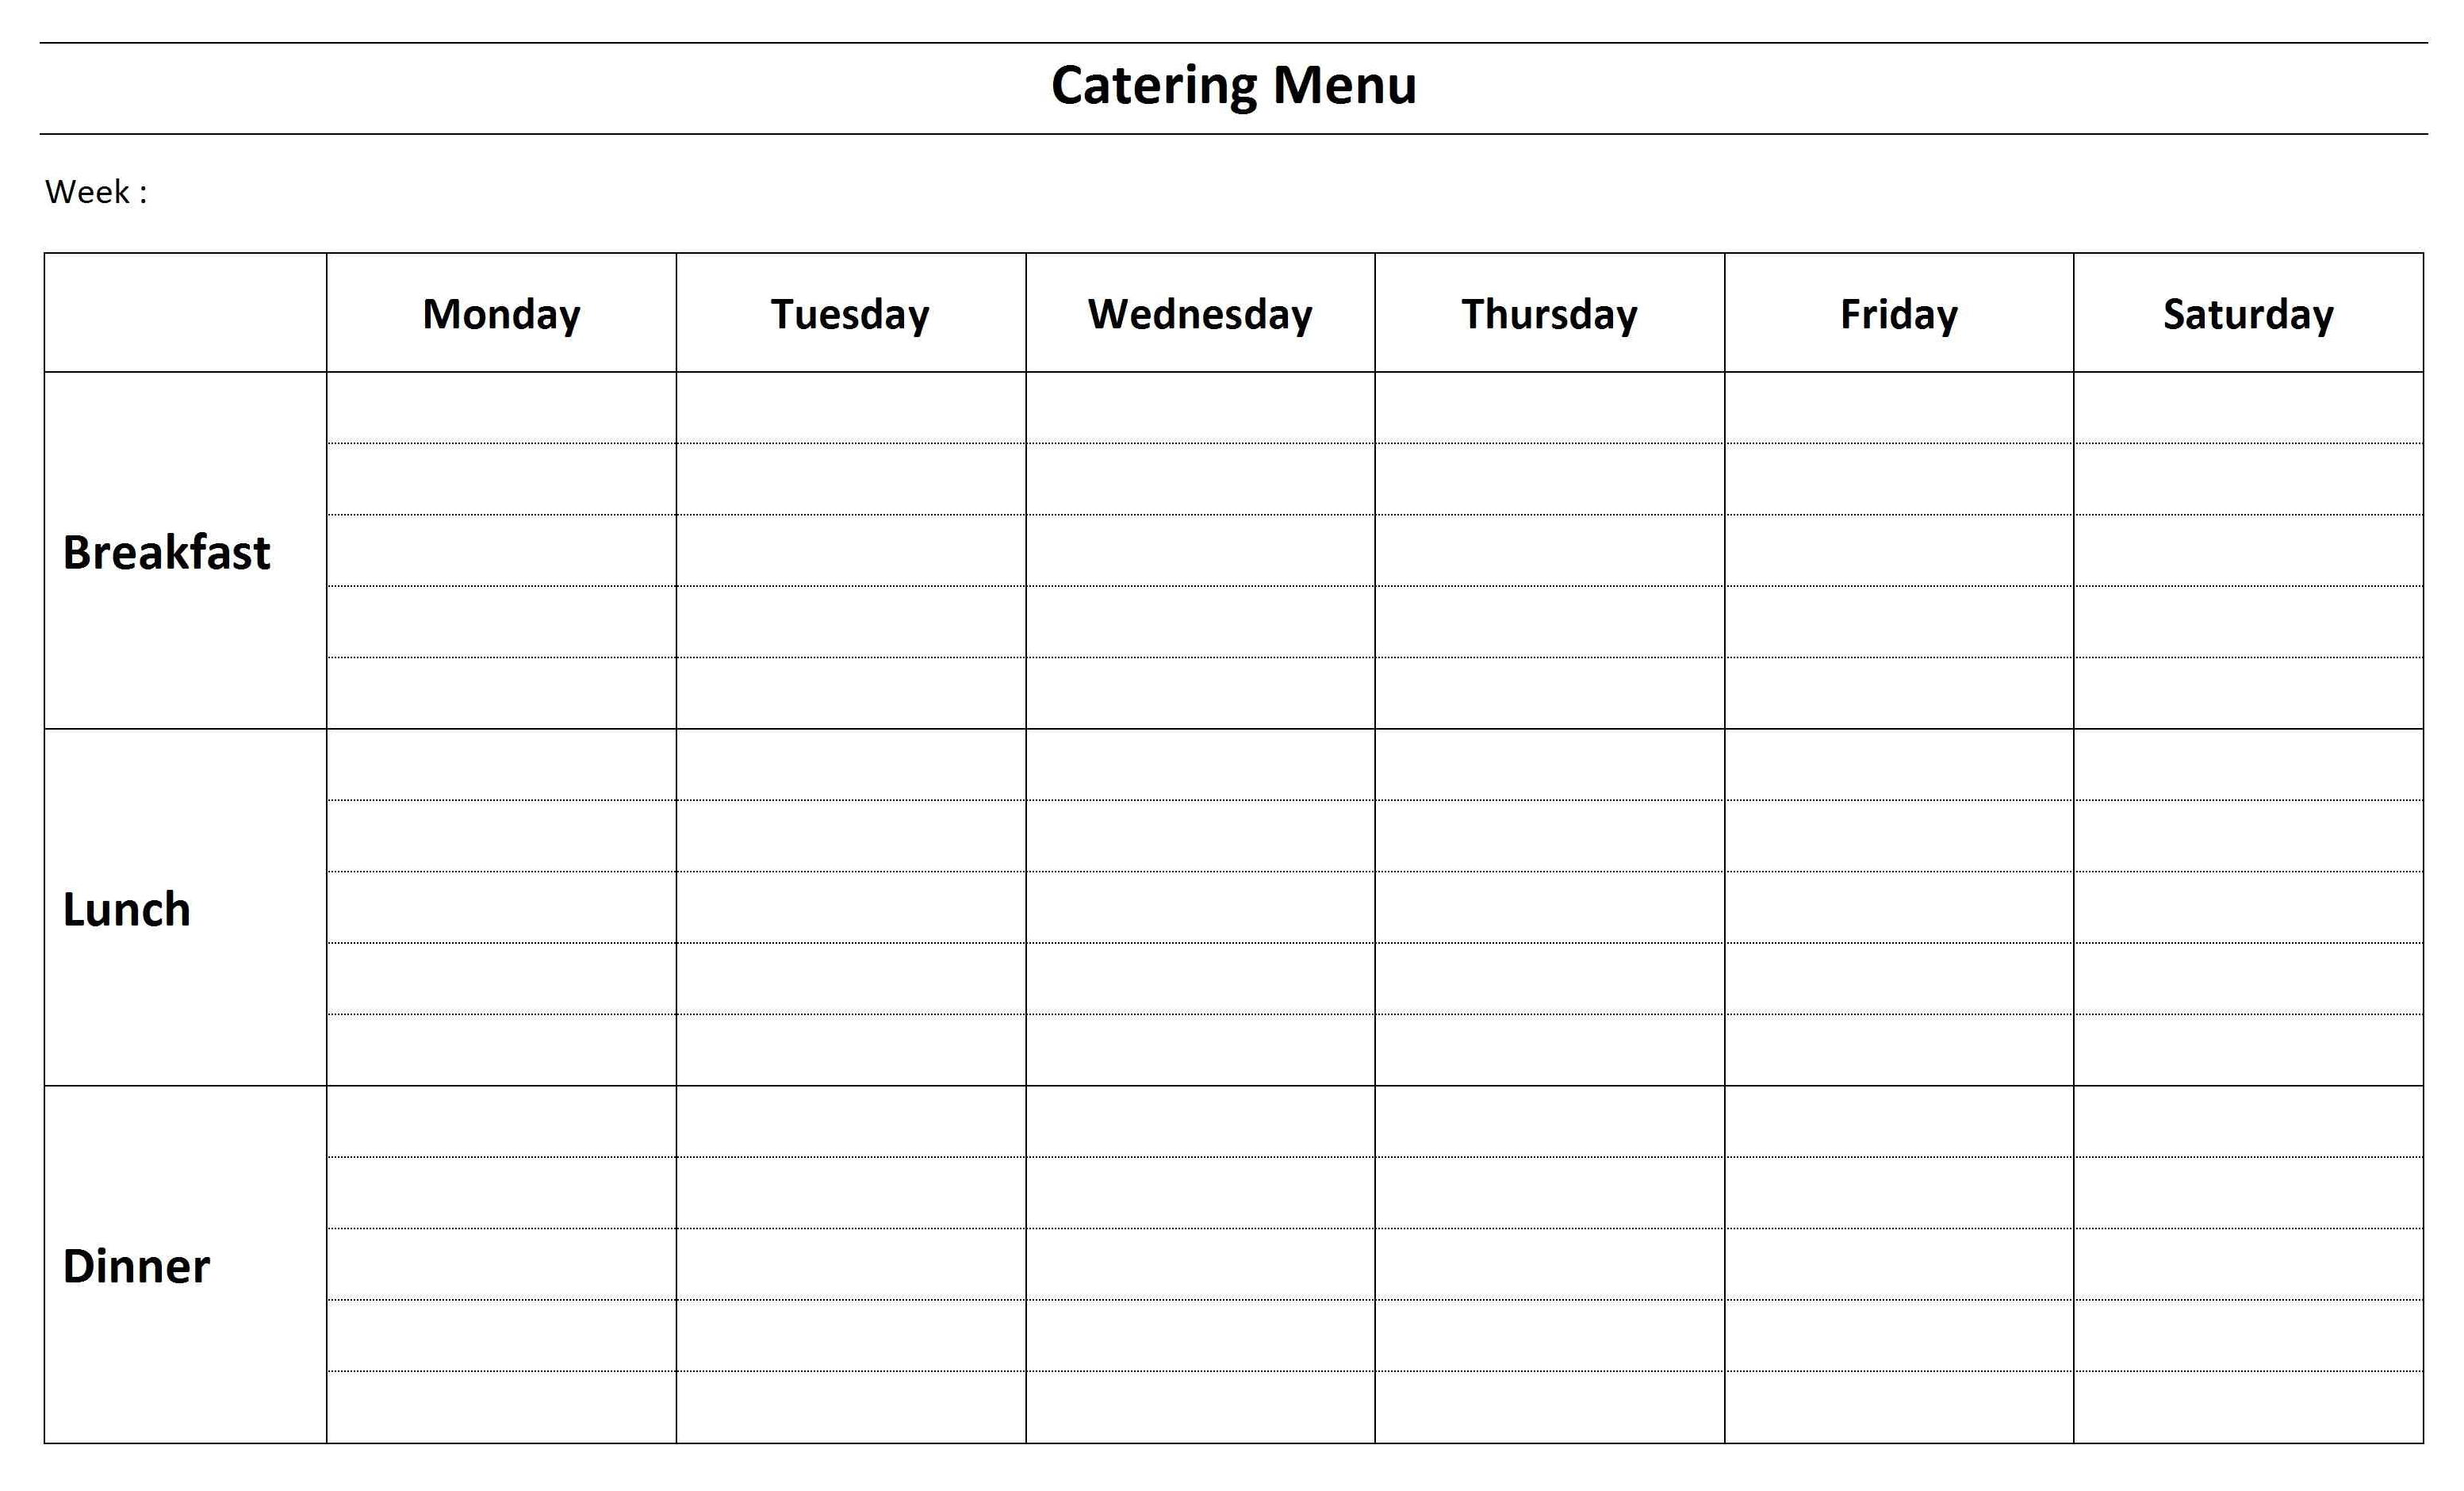 Catering Menu Template   Word  Catering Menu Template Free